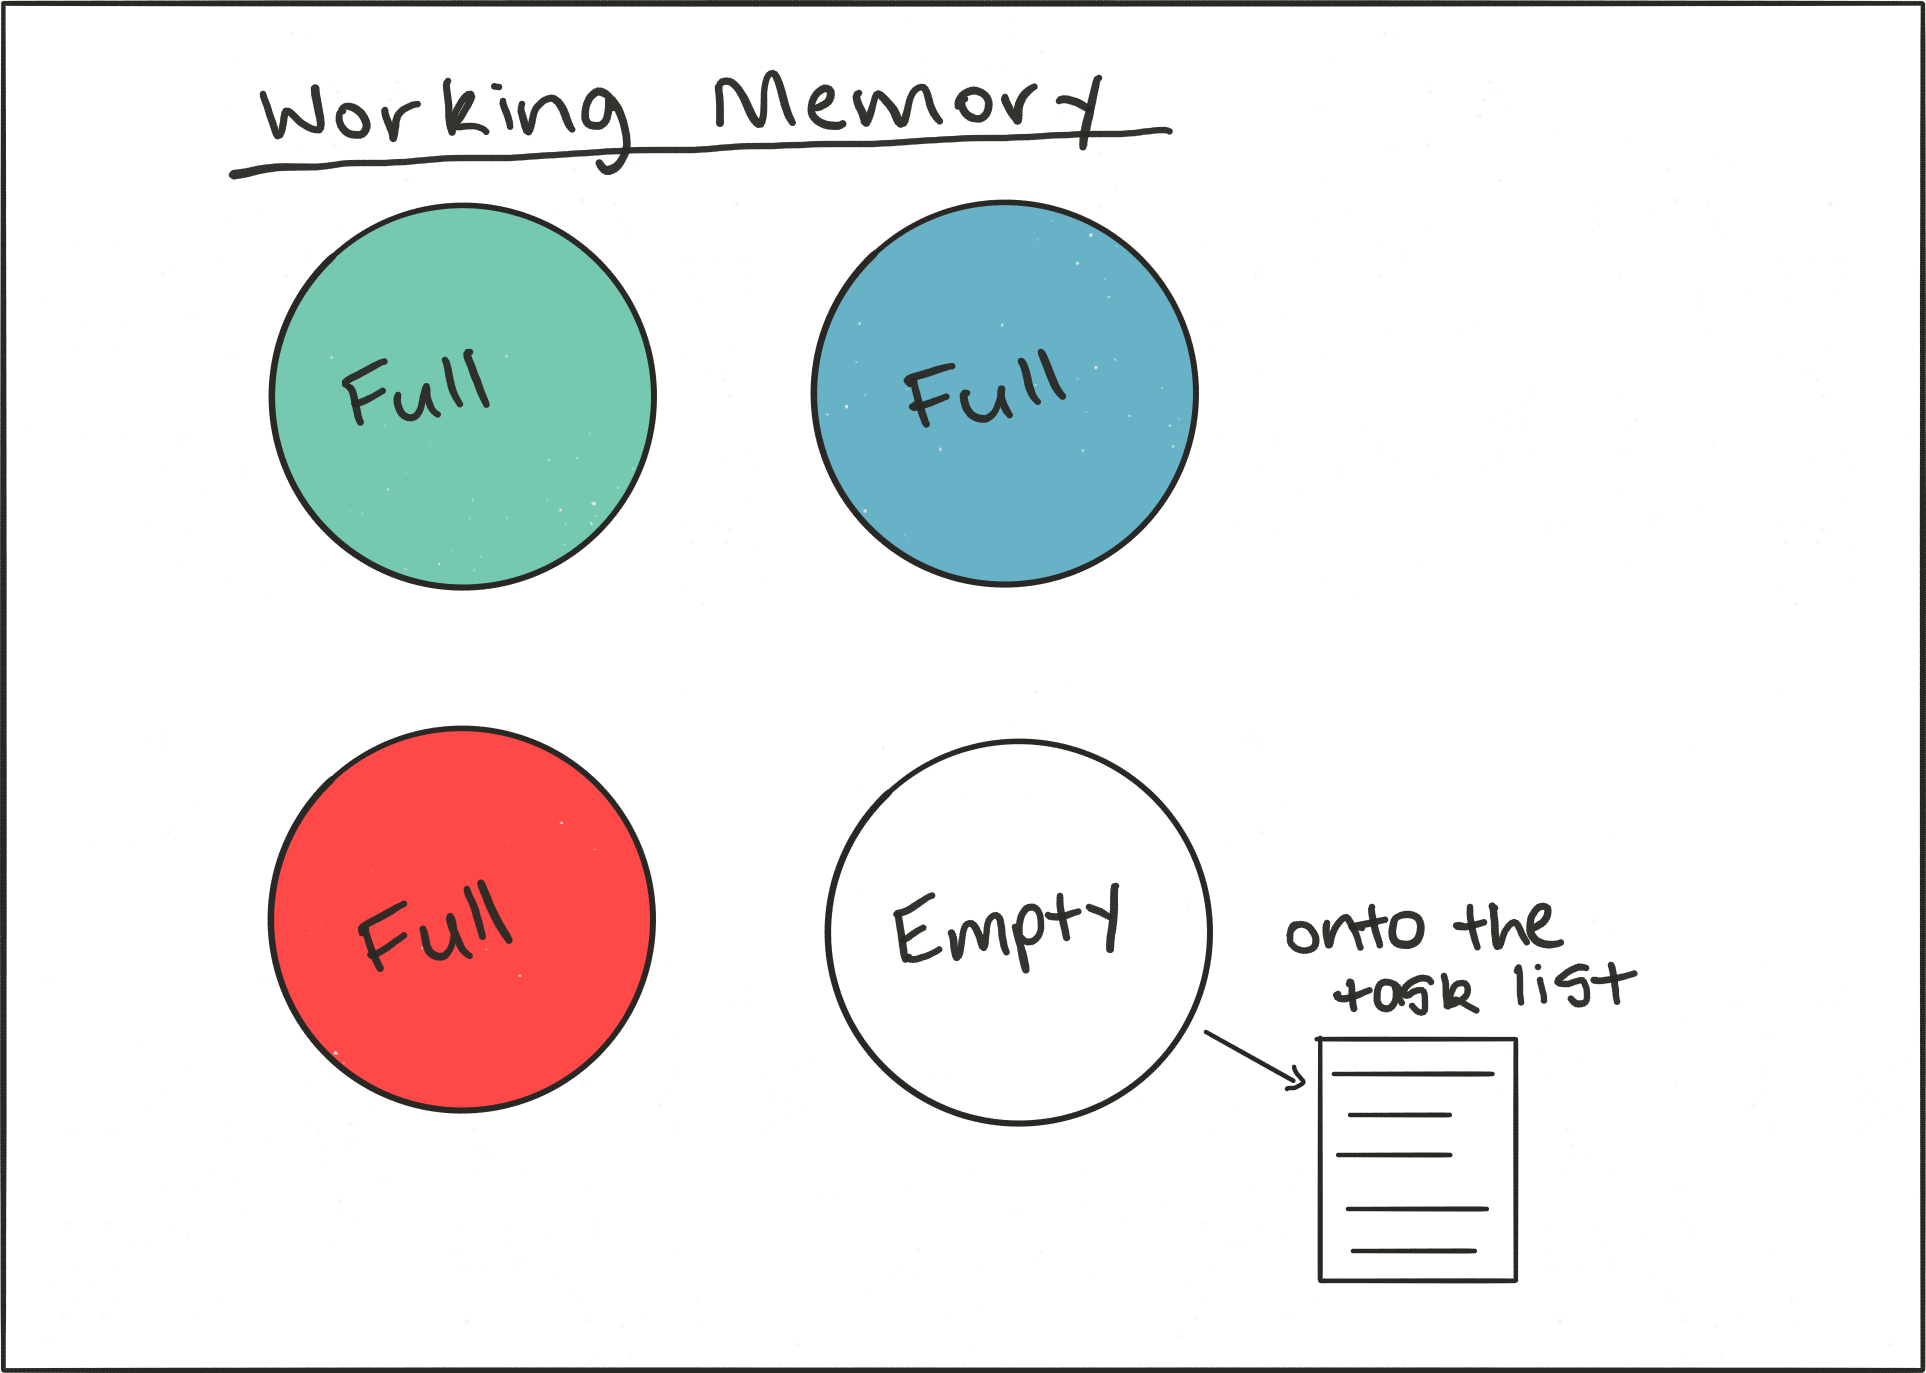 You've only got a limited number of slots in your working memory. If using a task list helps to free up one of the slots, it's worth it.